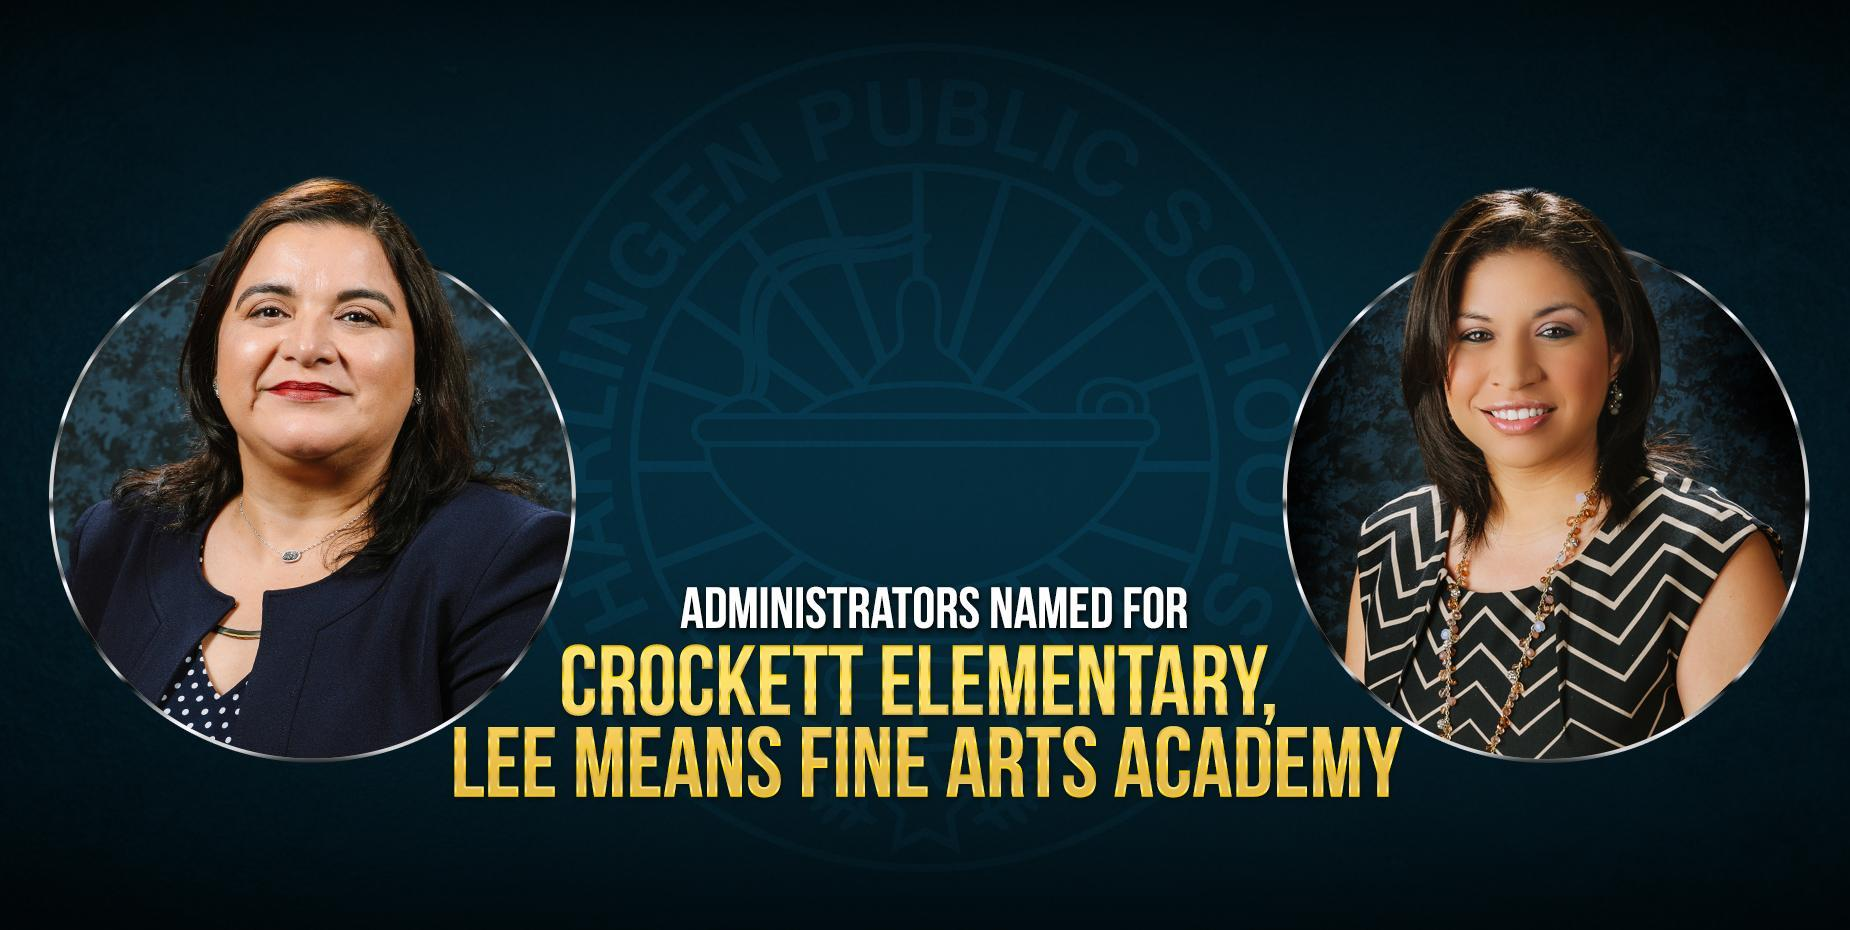 Administrators named for Crockett Elementary, Lee Means Fine Arts Academy